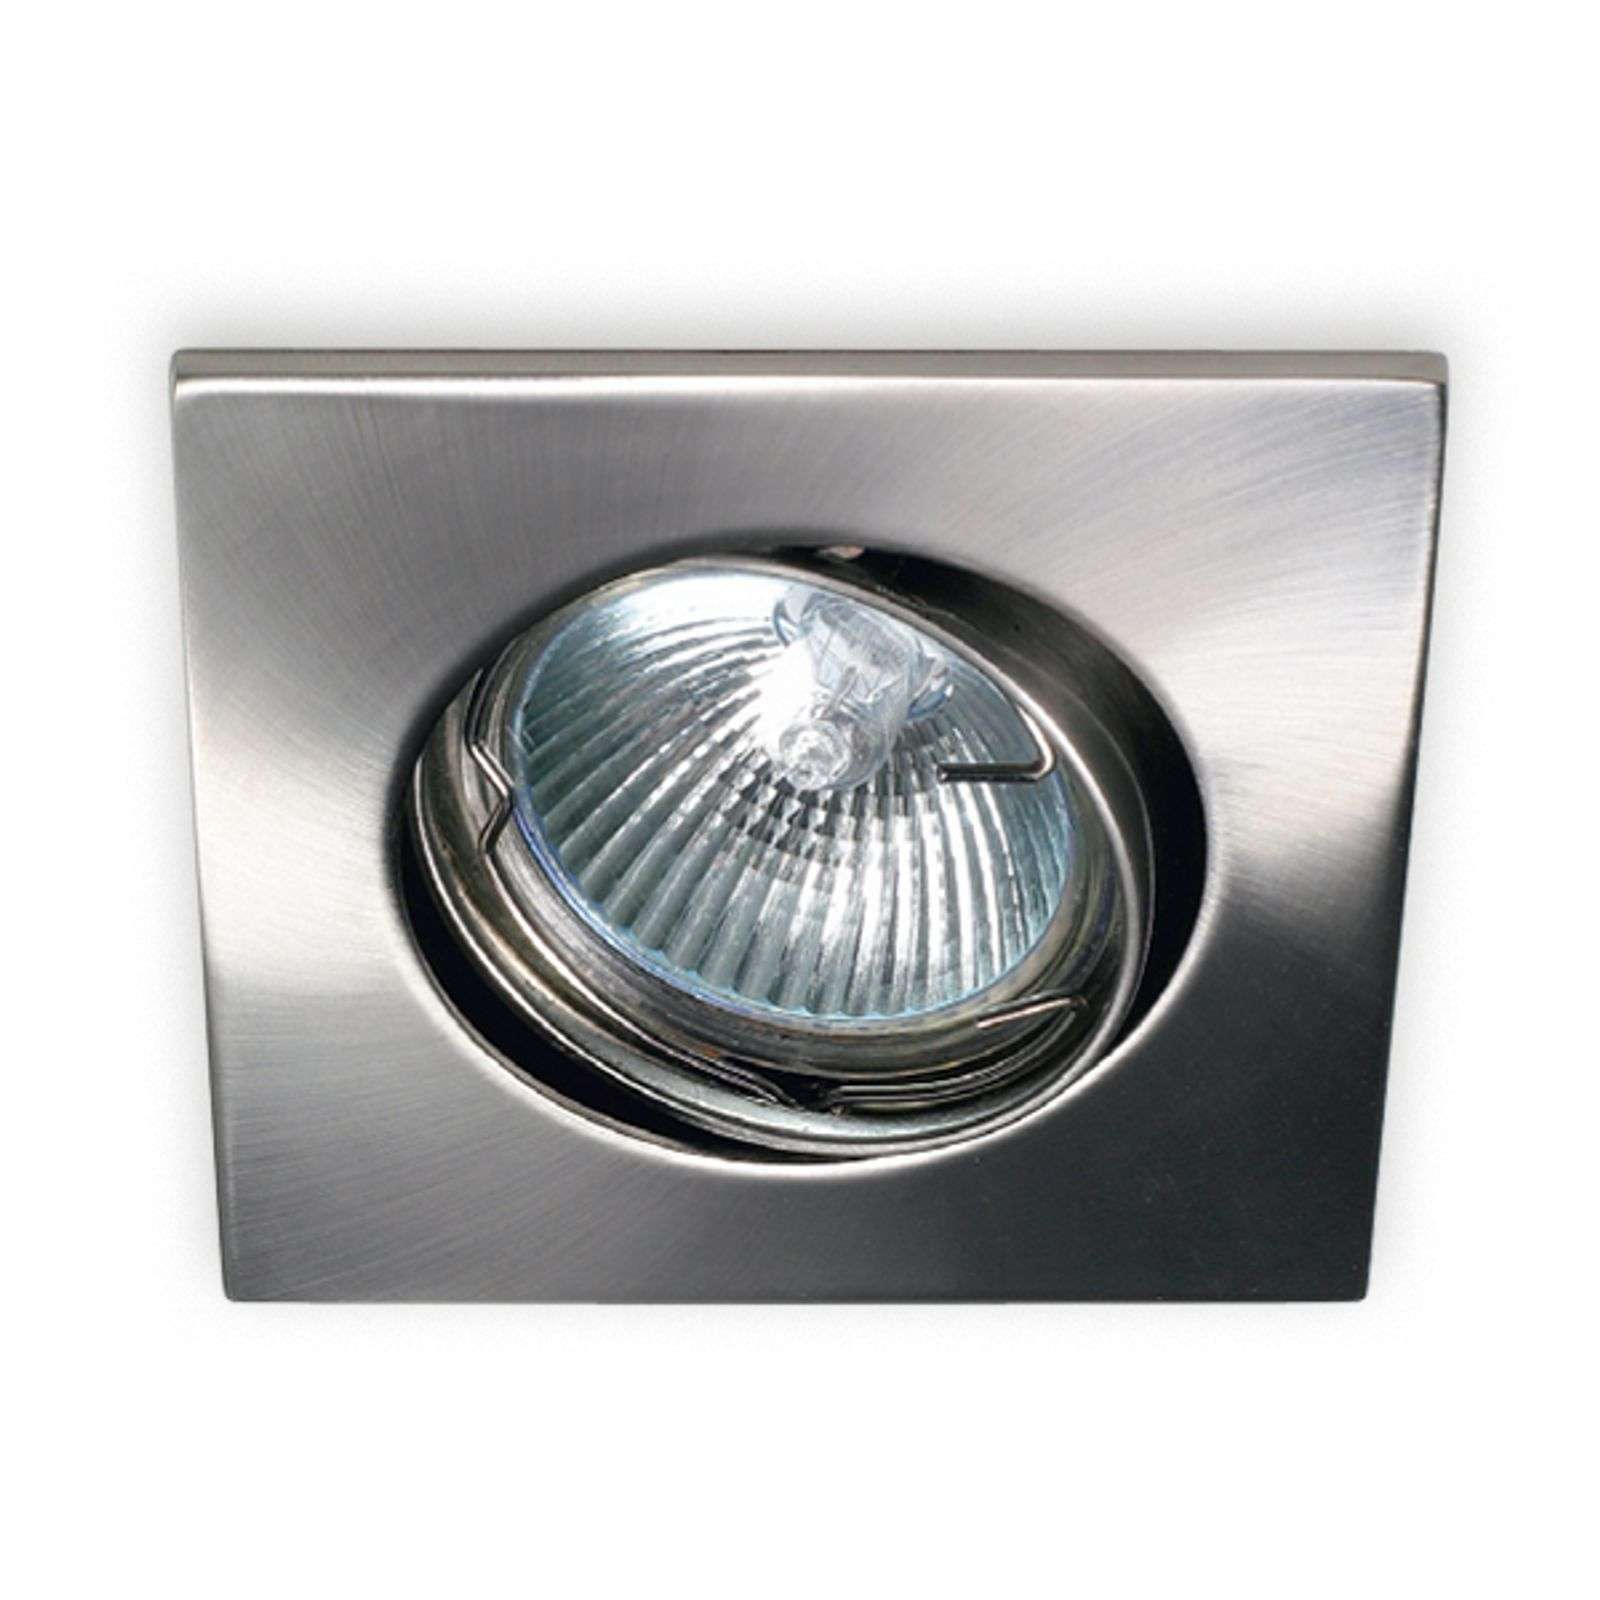 Moderno downlight Karu, nichel satinato